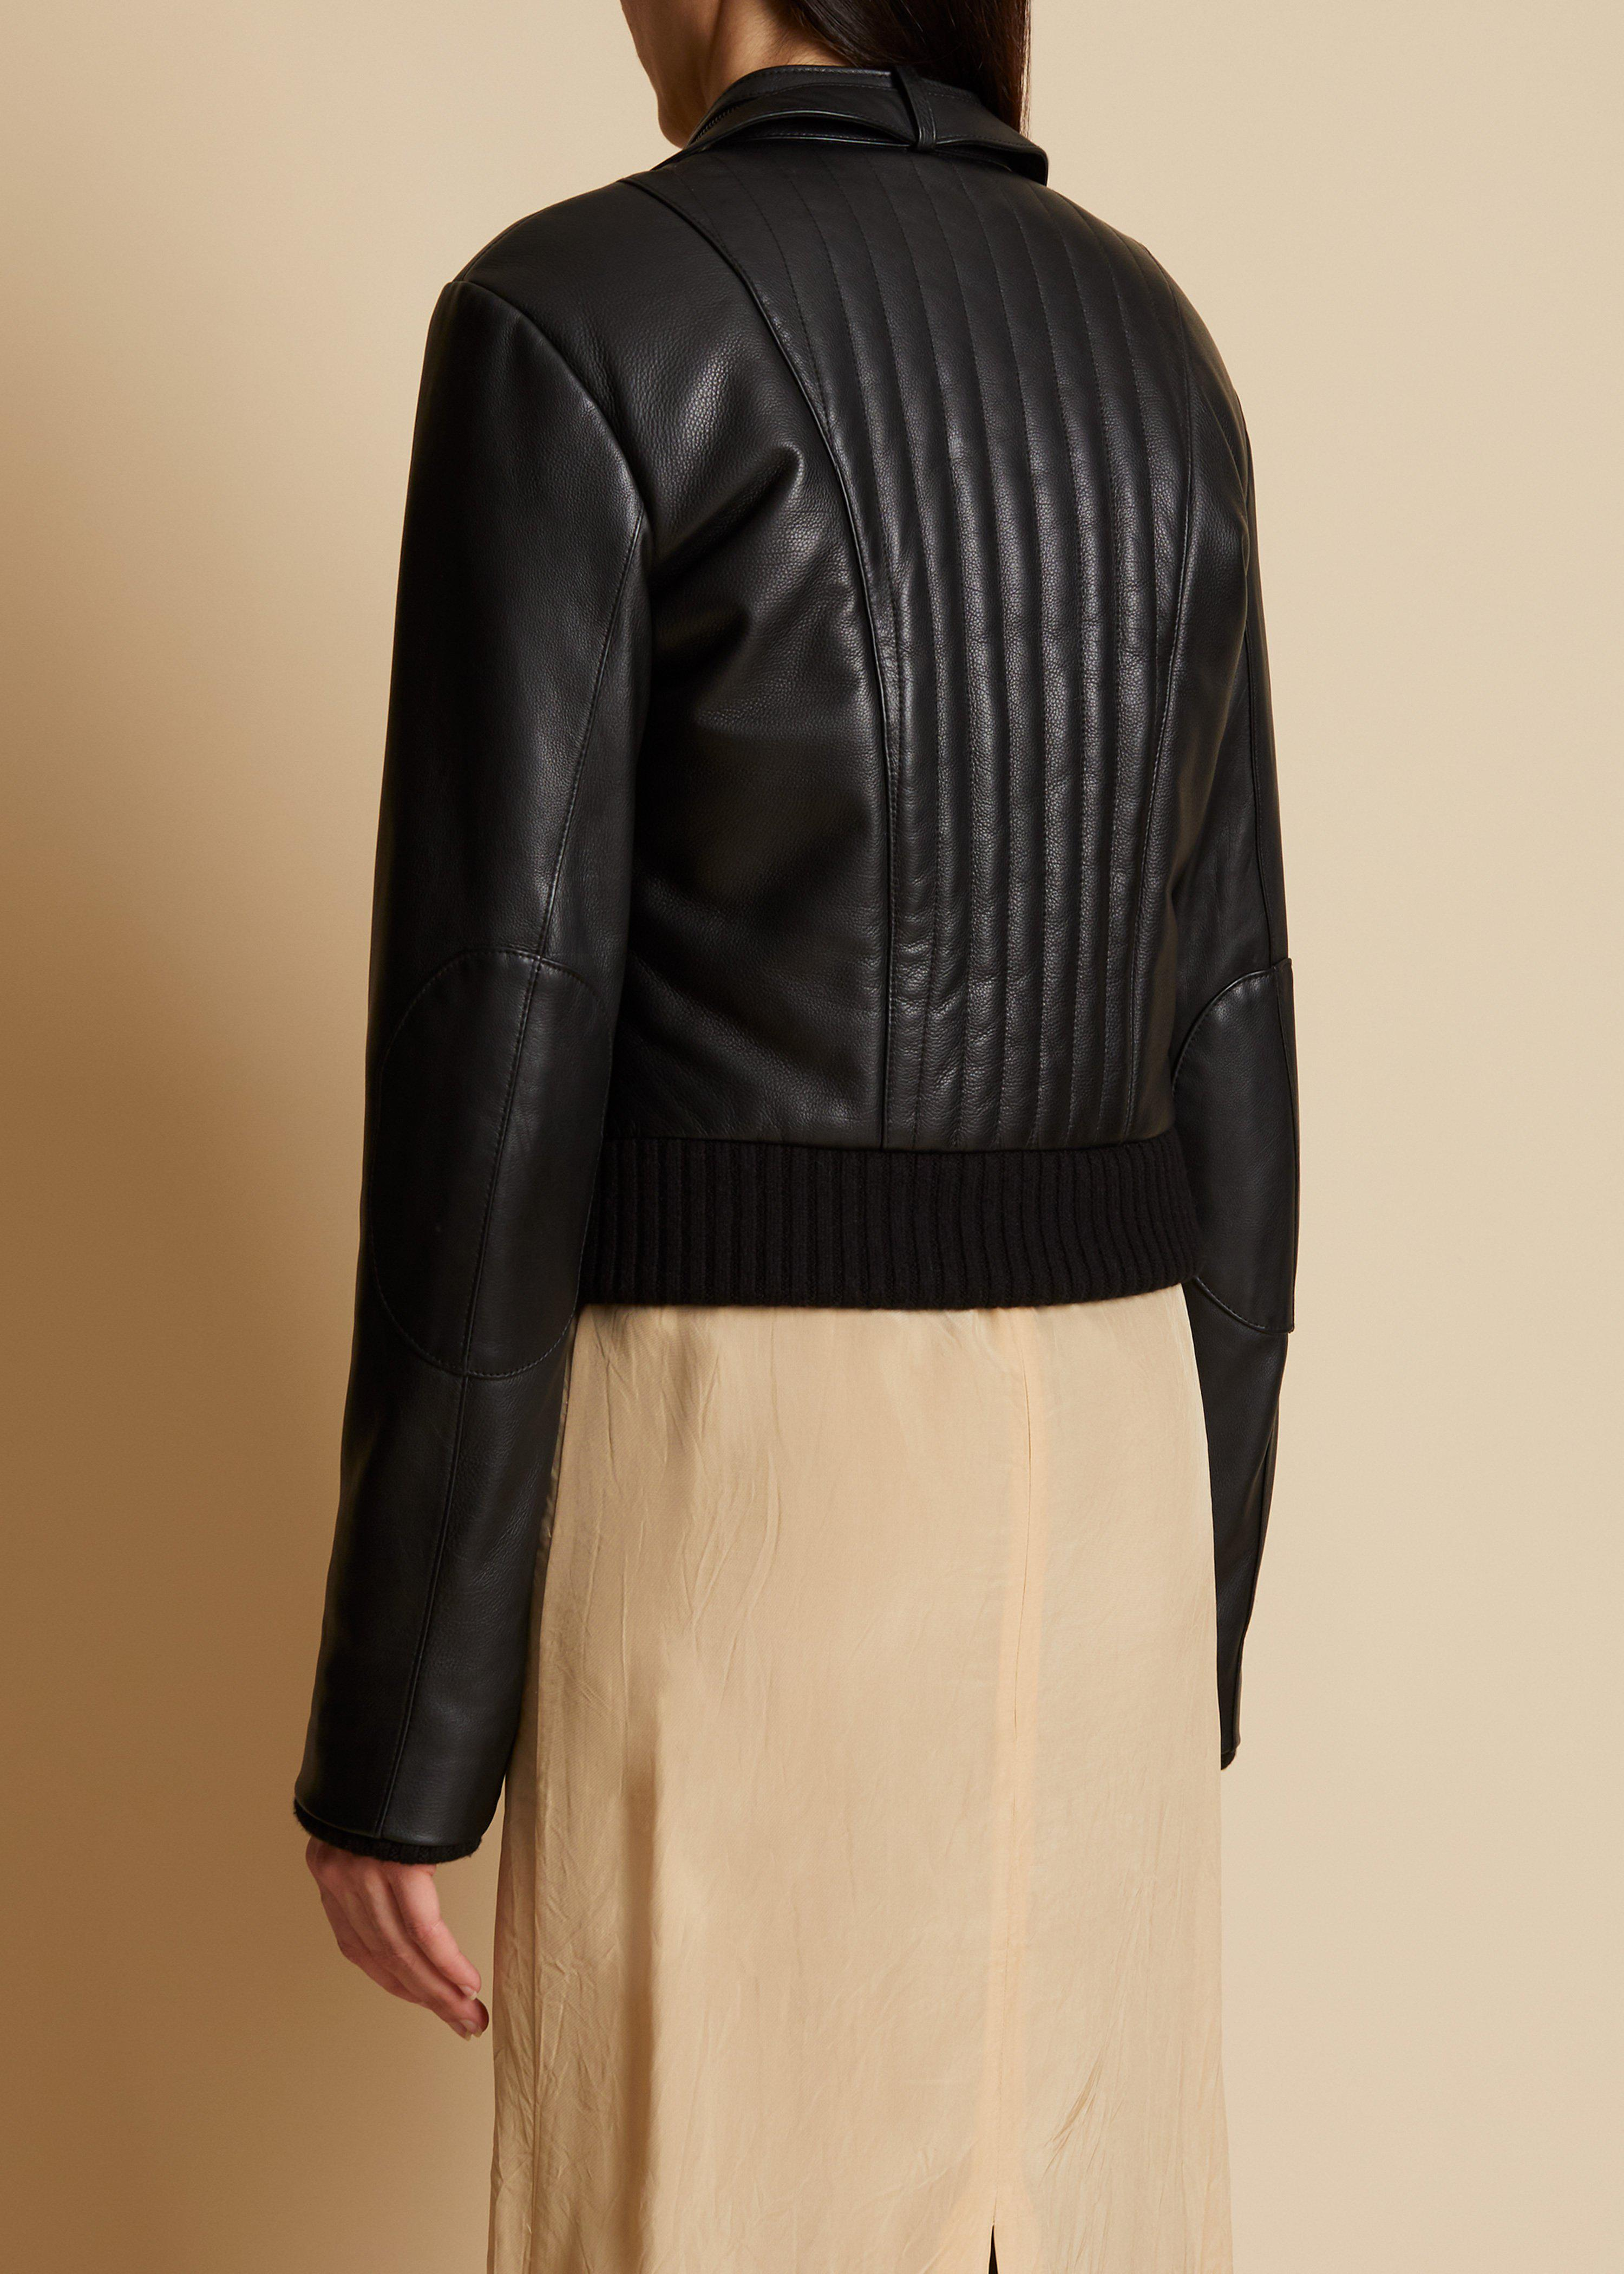 The Nicolette Jacket in Black Leather 2